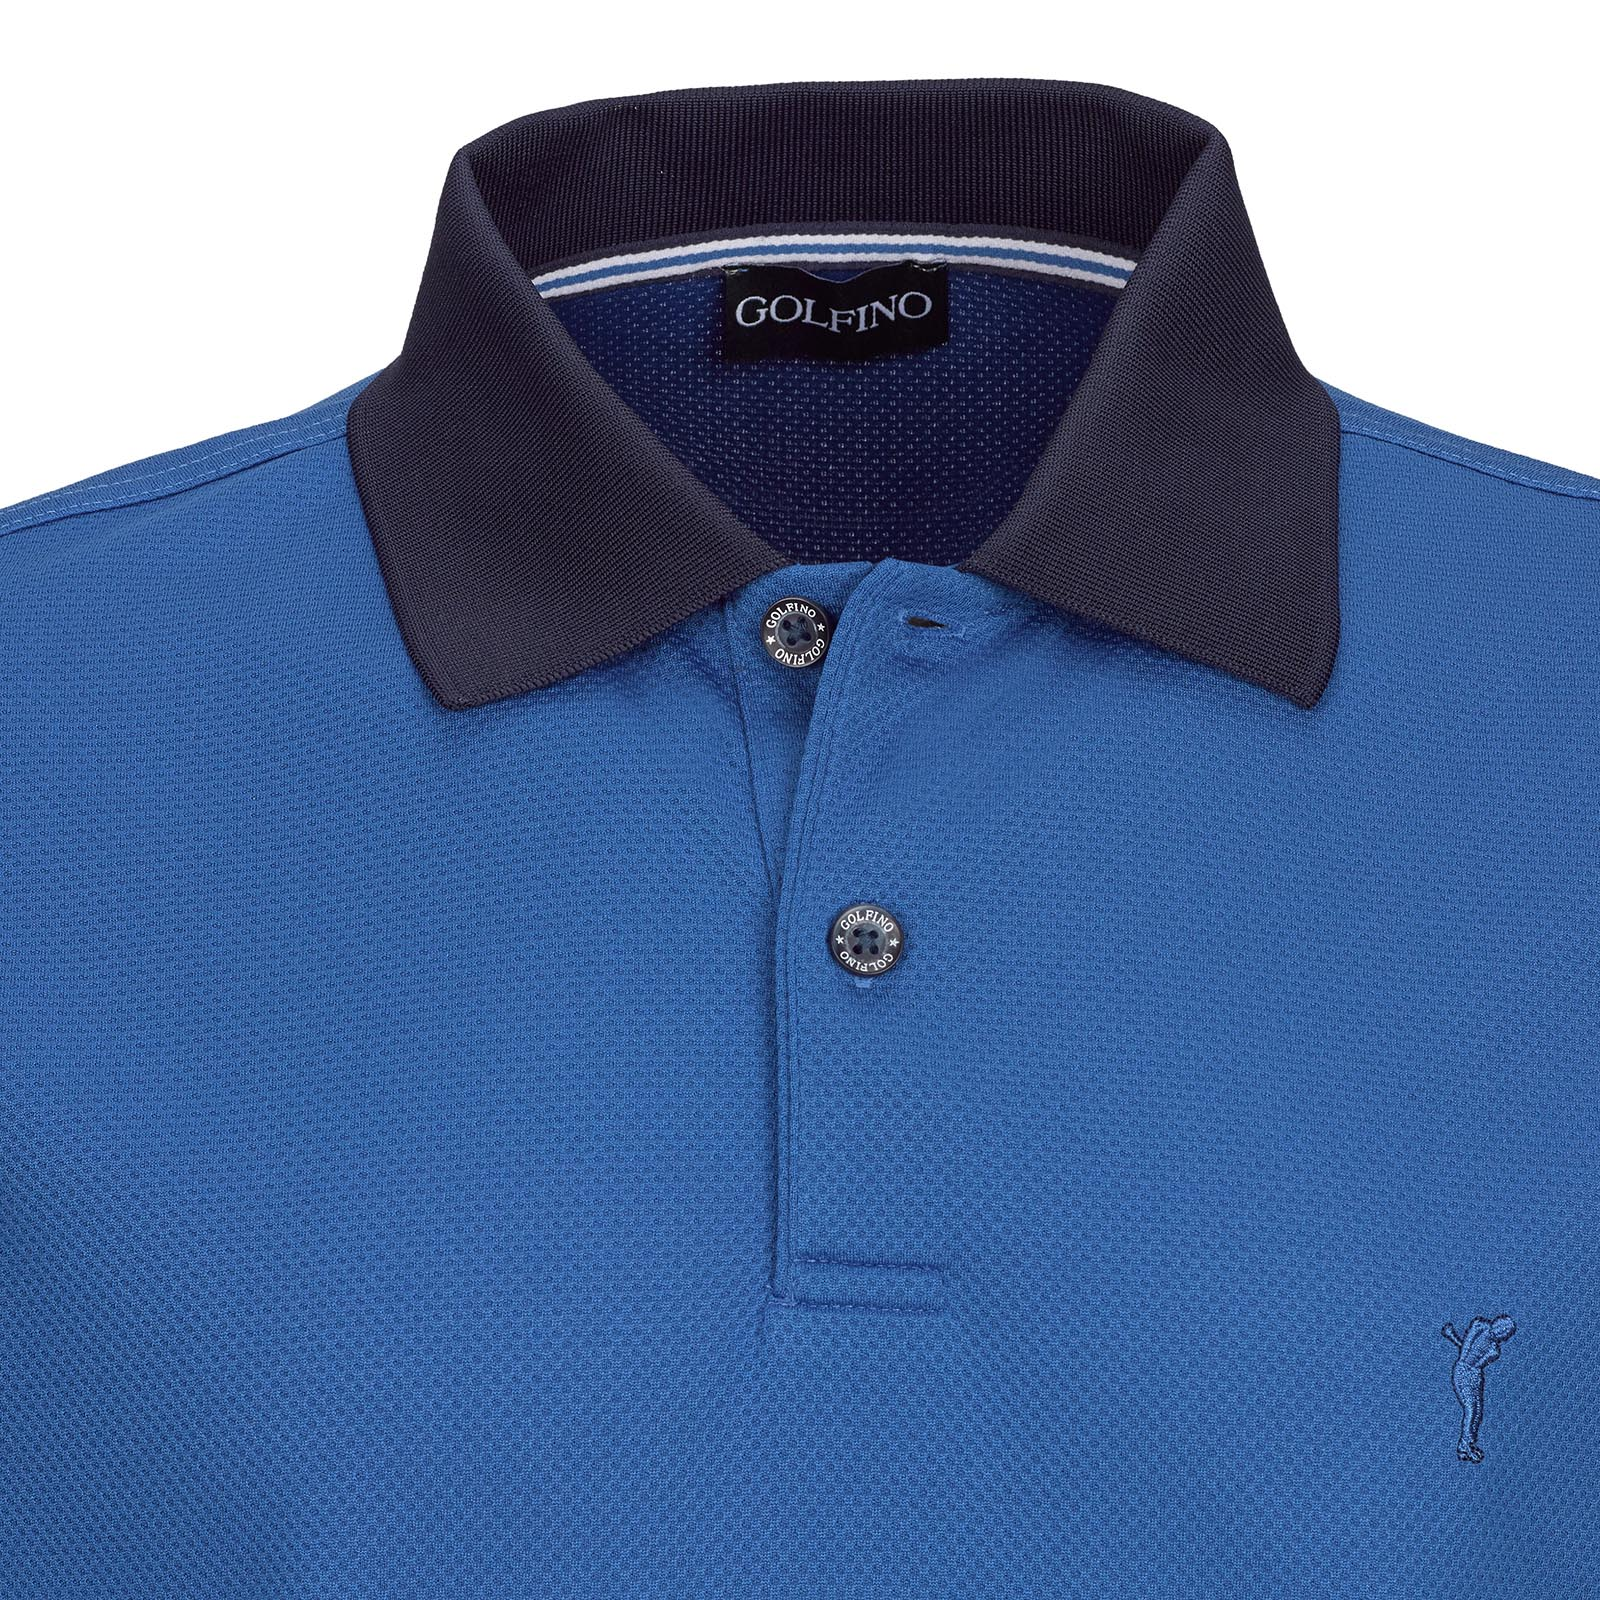 Resort Wear Herren Kurzarm Kafetex-Golfpolo mit Moisture Management